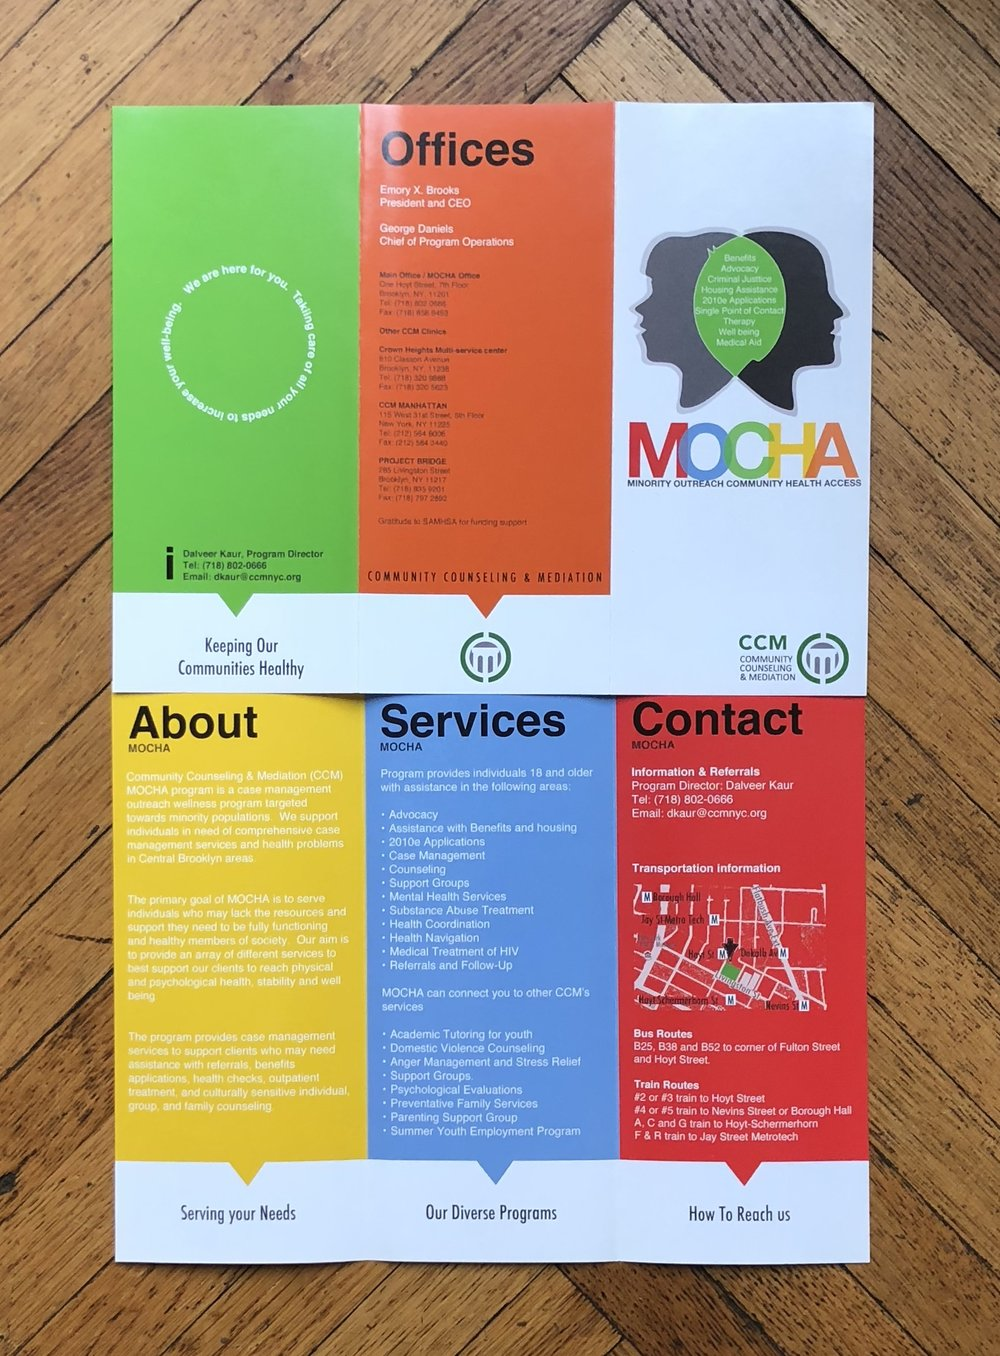 Pamphlet Design - For CCM, a community-based, social service organization providing a wide range of social support, counseling, health, mental health, education and supportive housing services to at-risk children, youth, and families in some of the poorest minority populated areas of Brooklyn.